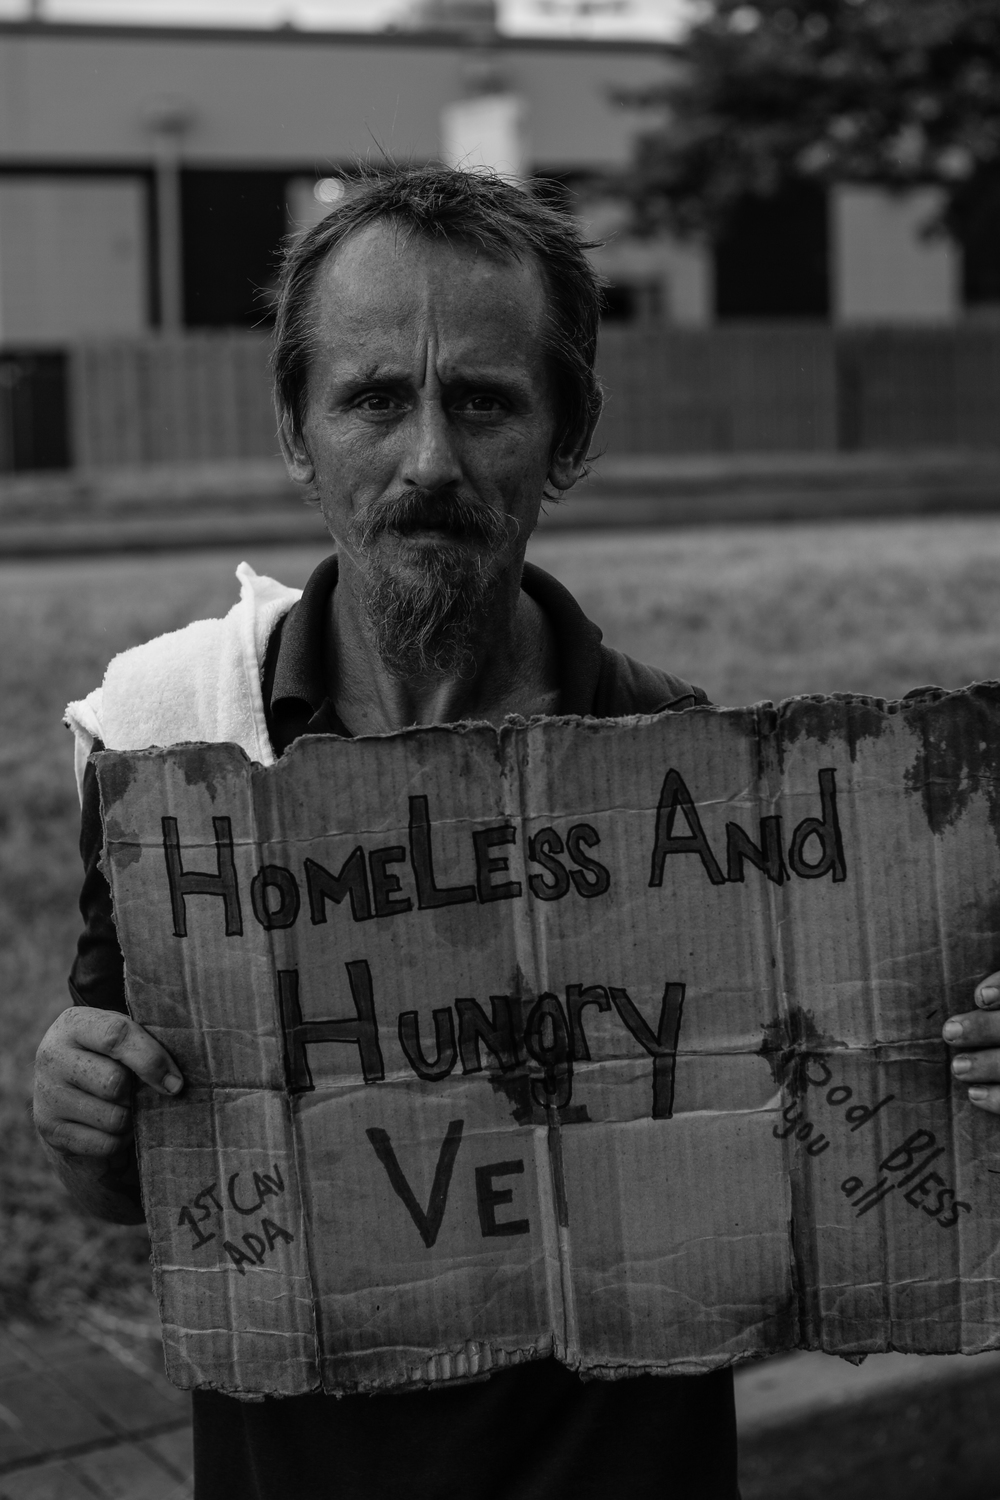 Homeless and Hungry.jpg